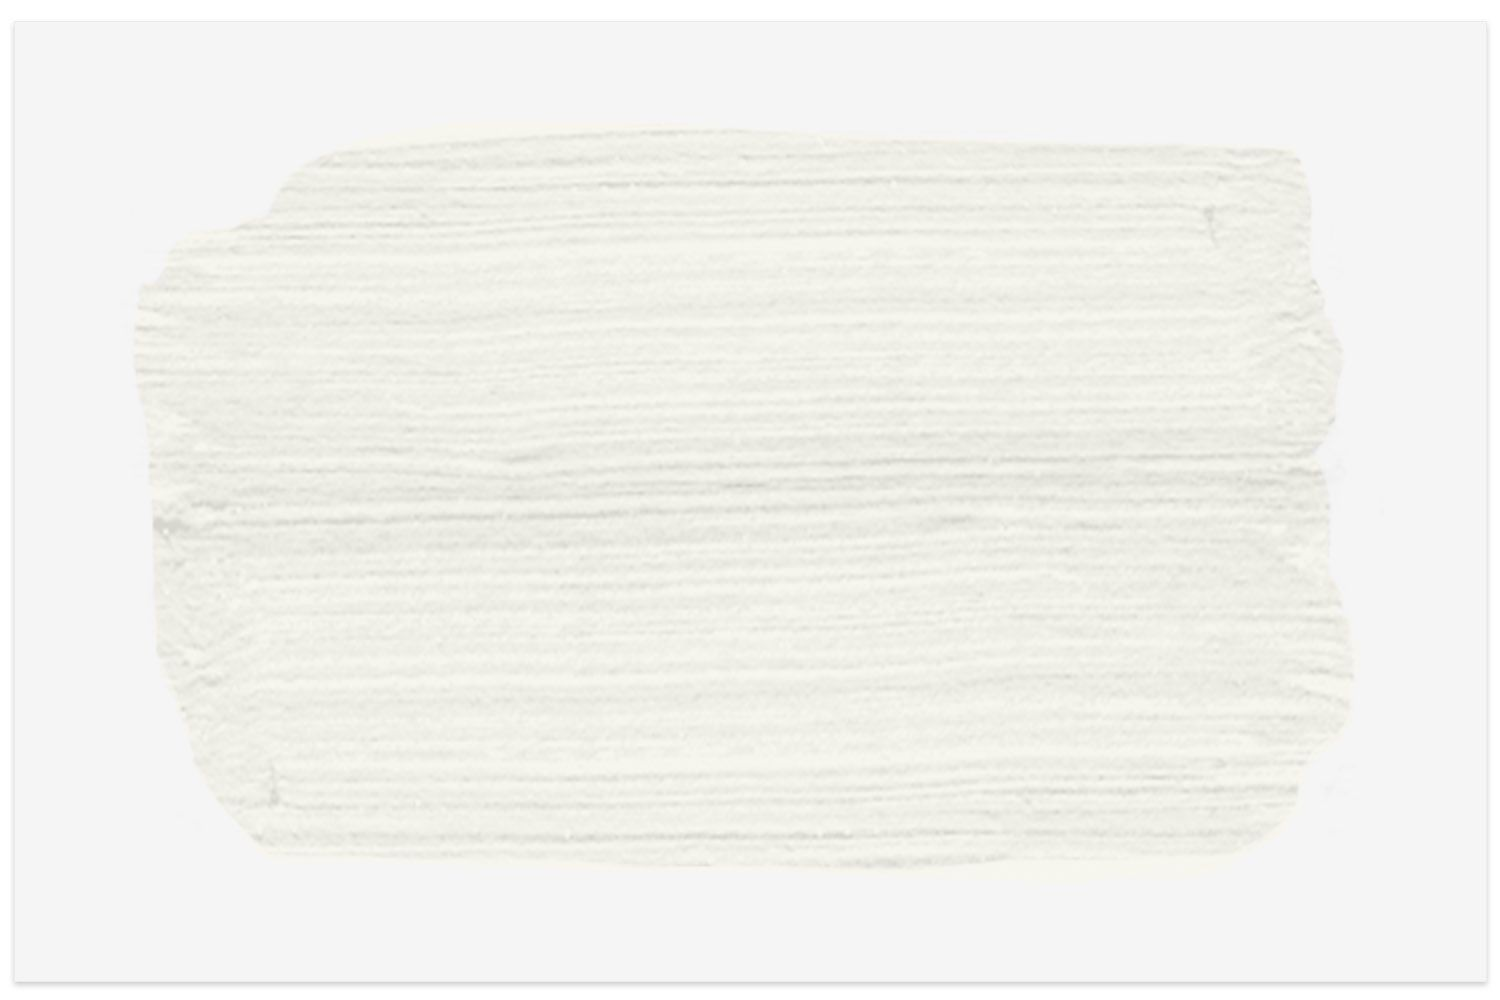 Simply White OC-117 paint swatch from Benjamin Moore